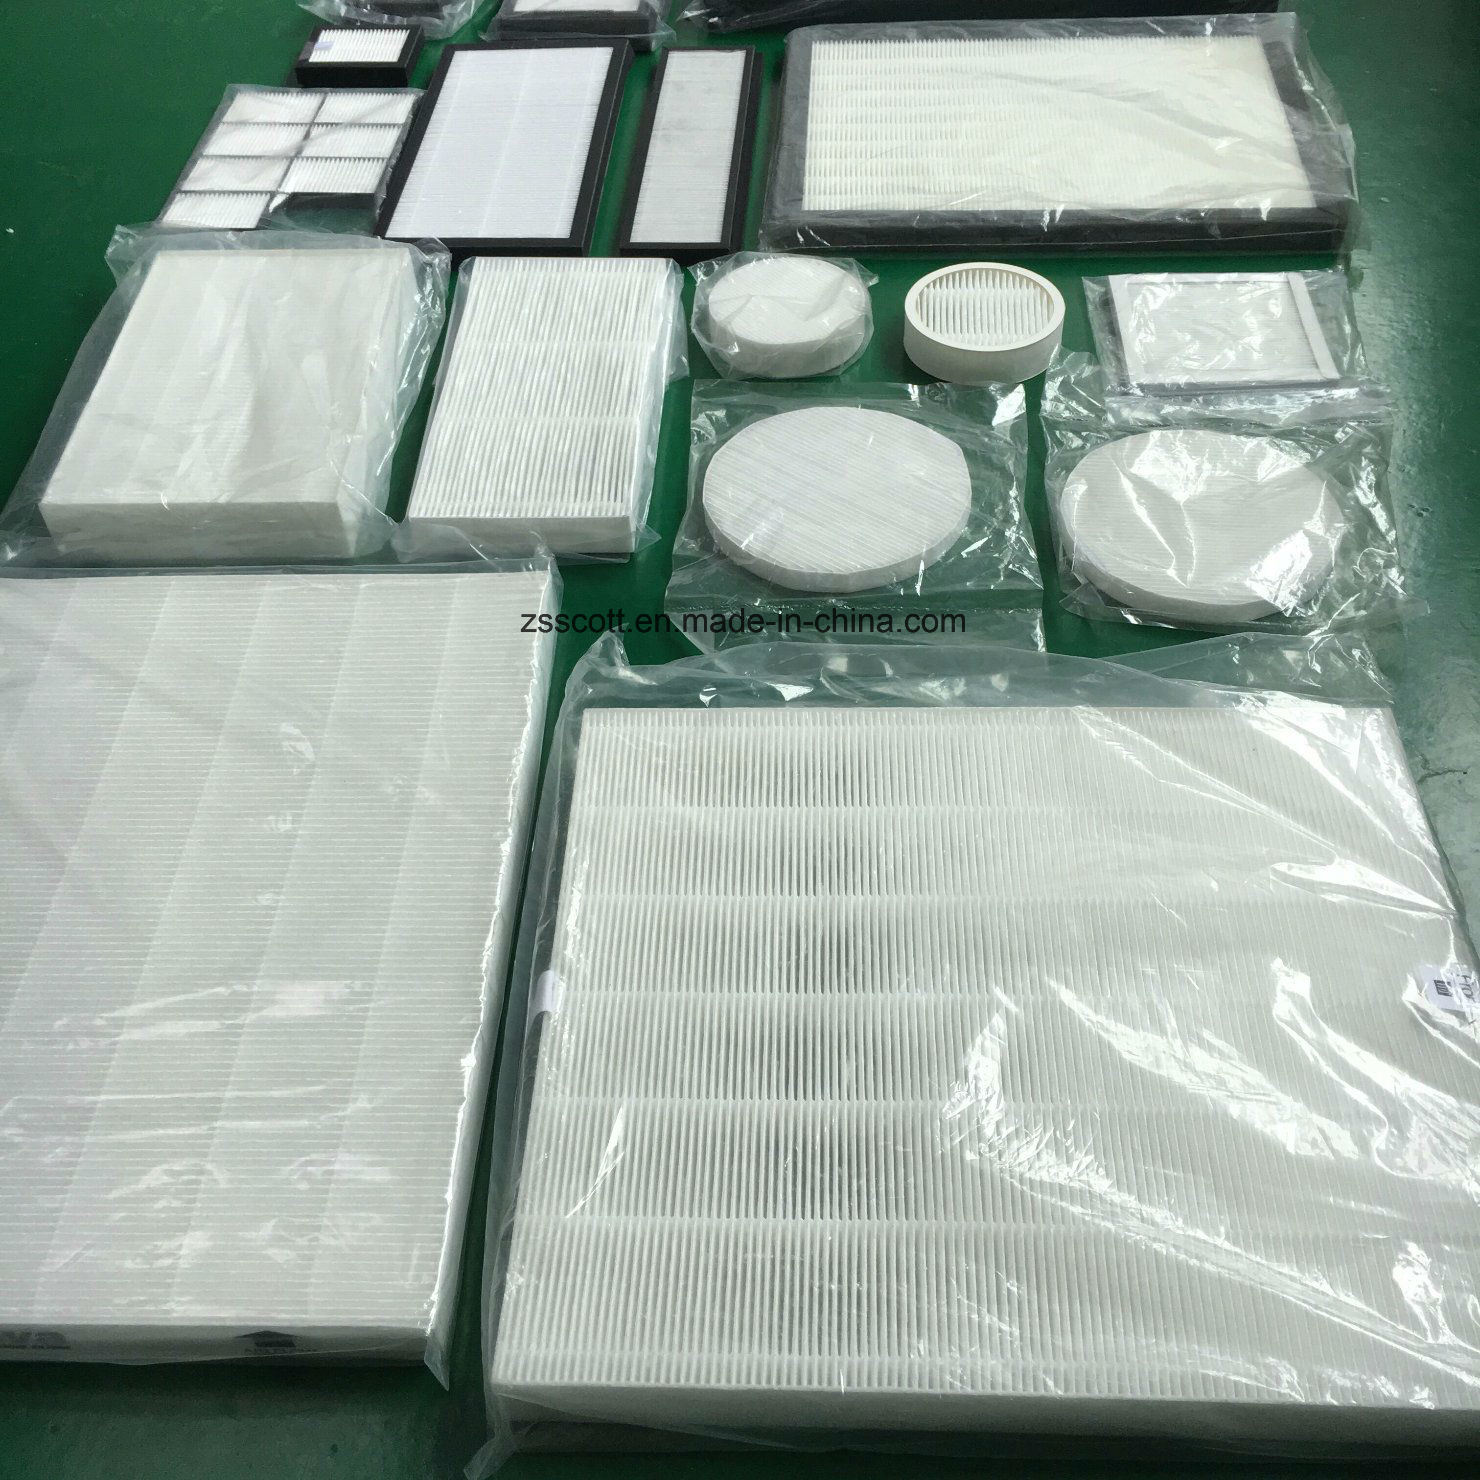 Specified by Customer HEPA Filter H13